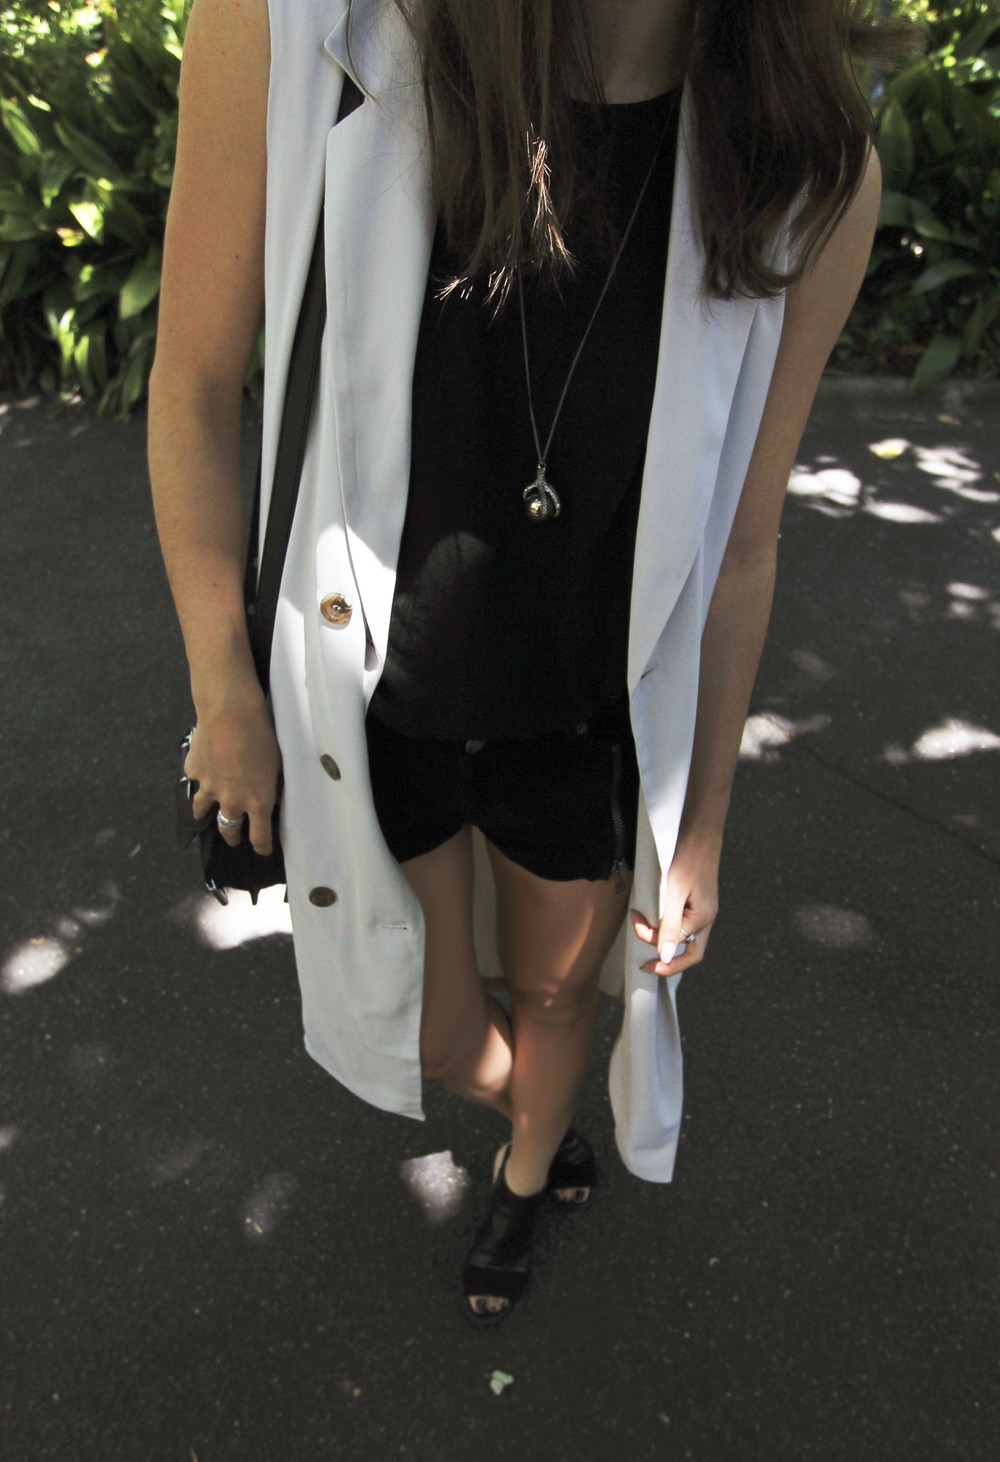 suede-hm-black-zipper-shorts-top-forever-21-cream-trench-double-breasted-vest-outfit-style-street-melbourne.jpg